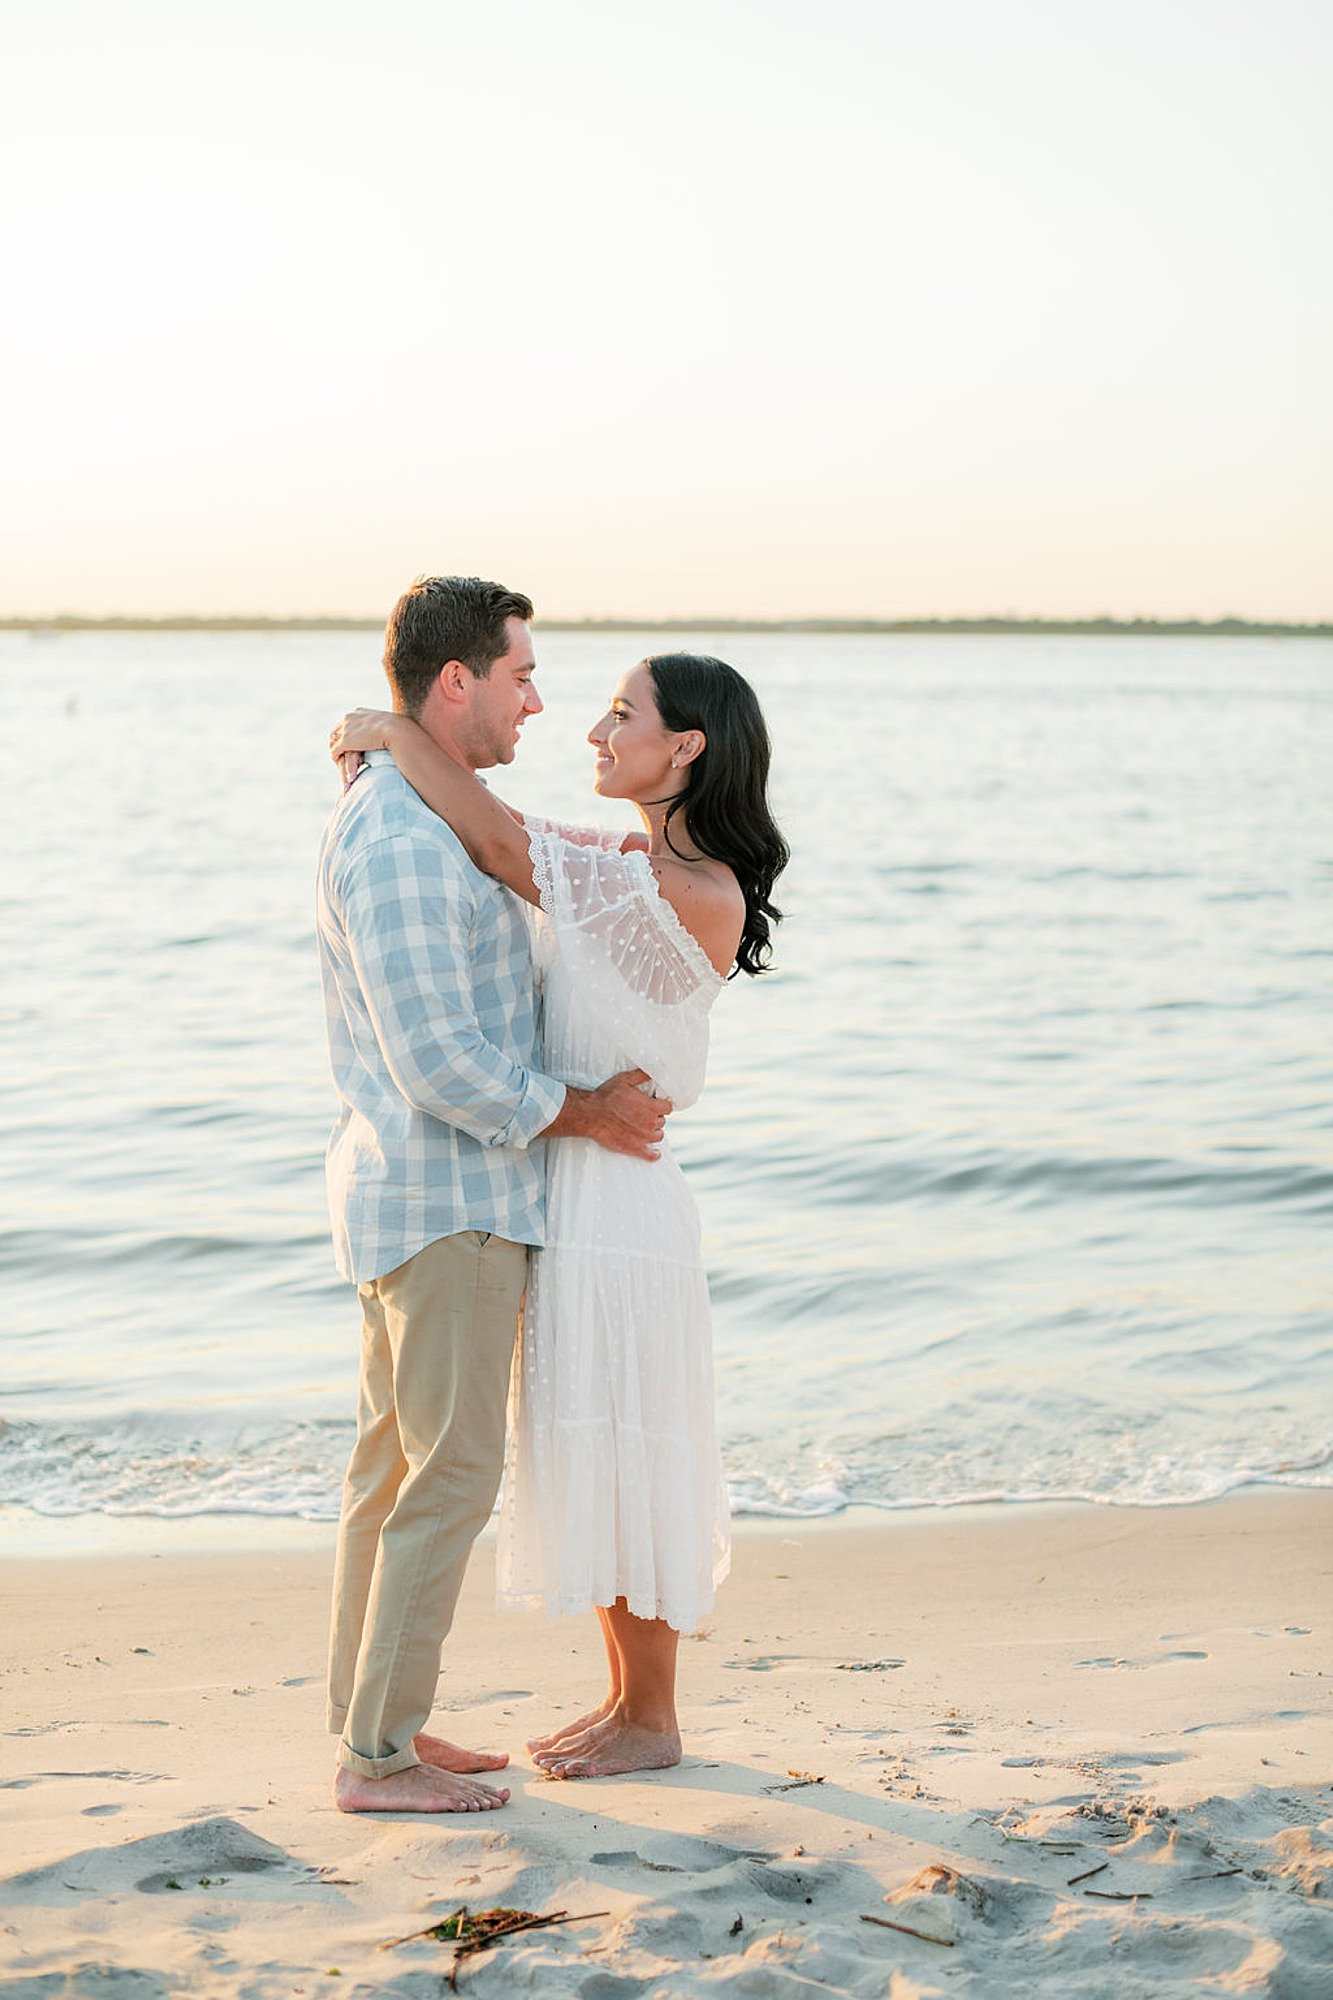 Airy and Bright Engagement Photography in Ocean City NJ by Magdalena Studios 0034